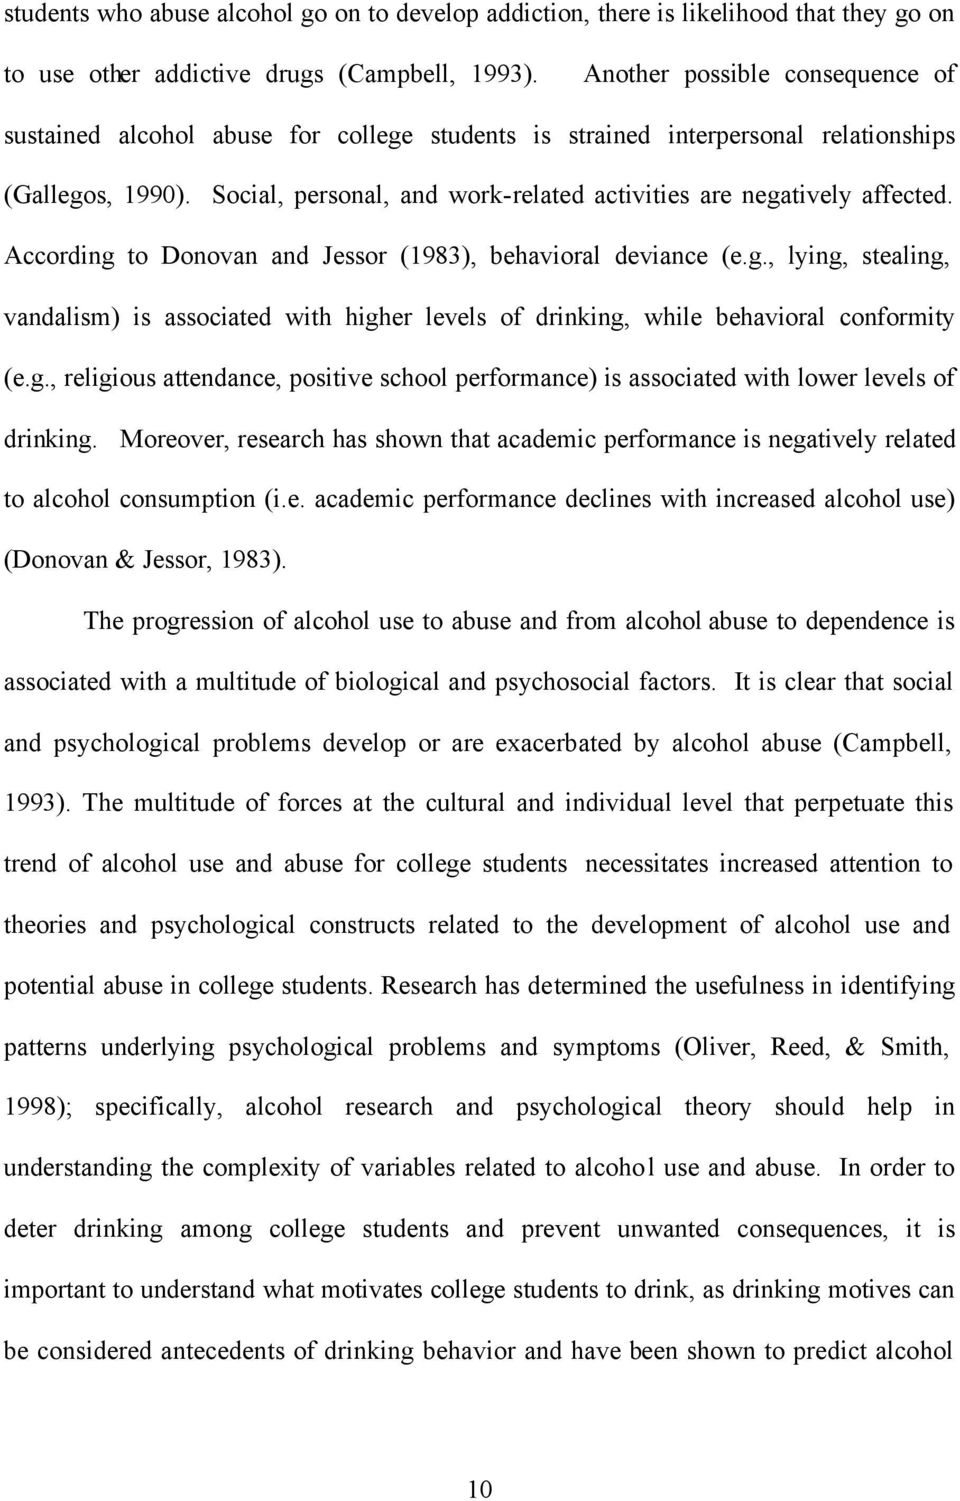 Social, personal, and work-related activities are negatively affected. According to Donovan and Jessor (1983), behavioral deviance (e.g., lying, stealing, vandalism) is associated with higher levels of drinking, while behavioral conformity (e.